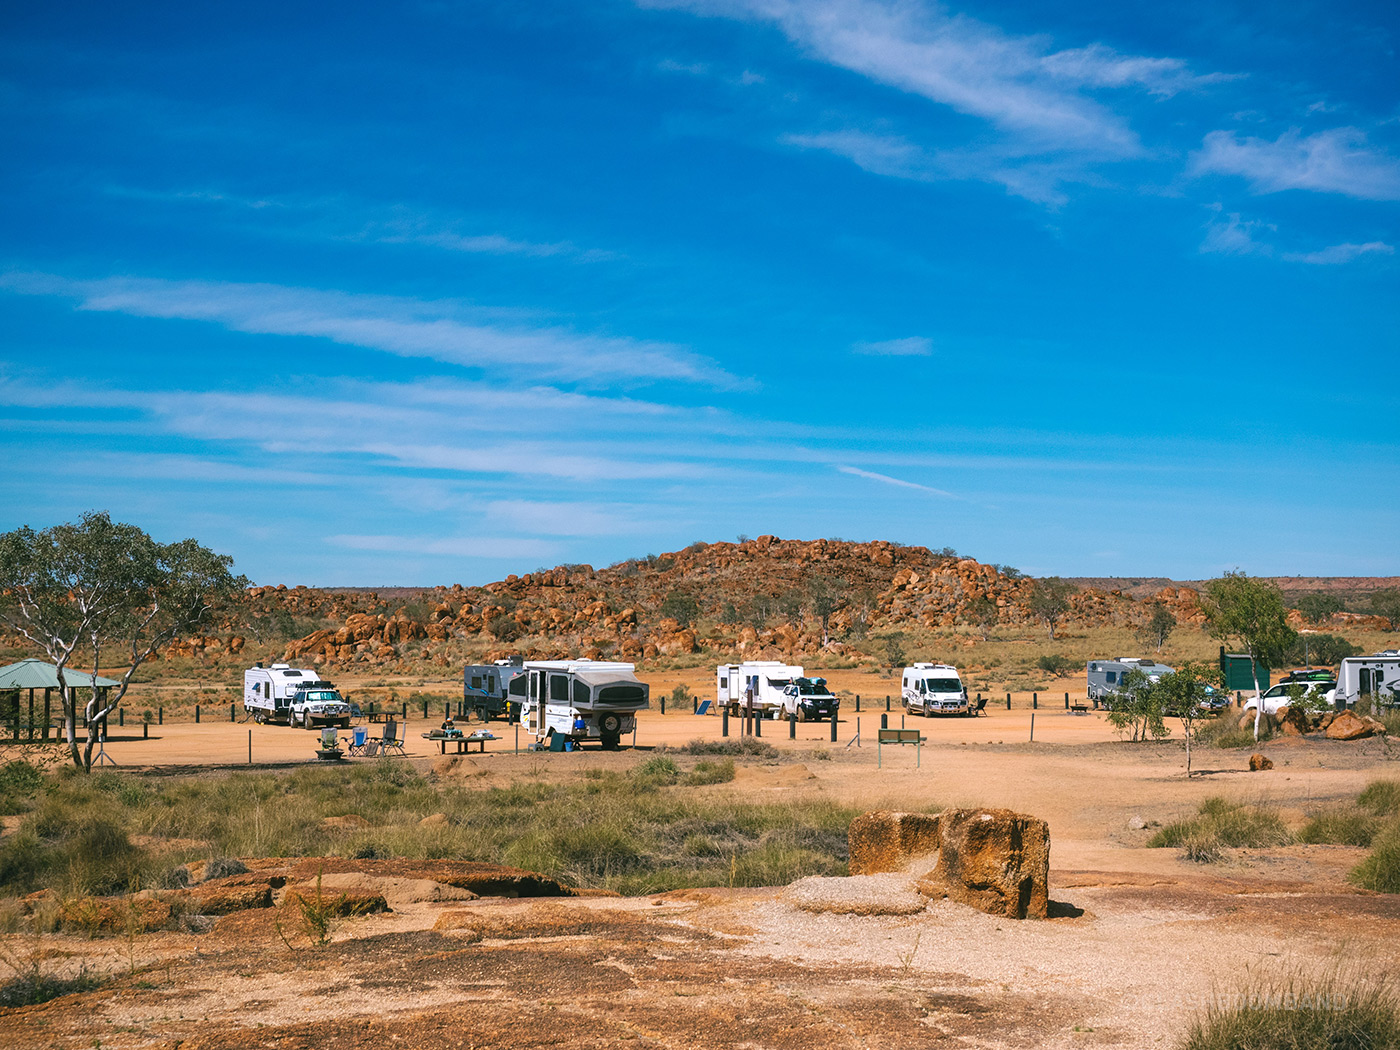 NT Australia - Karlu Karlu - Campervans parked by the other entrance